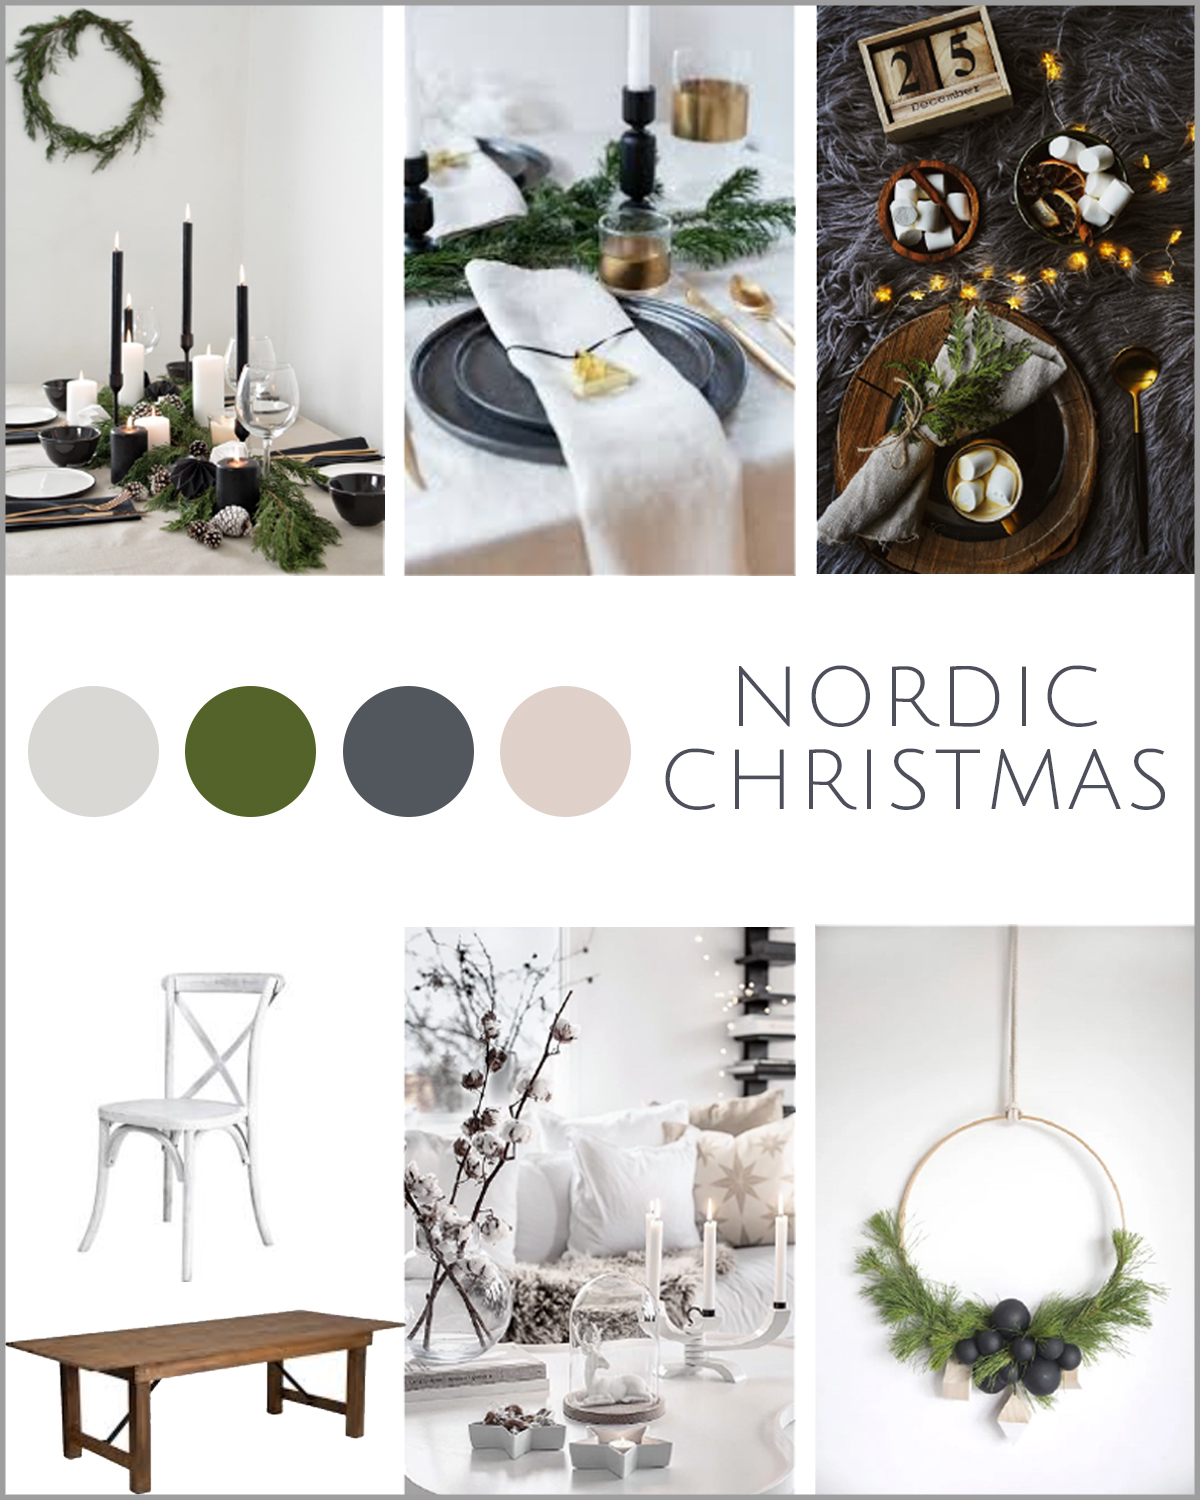 Outdoorsy Christmas themed party ideas